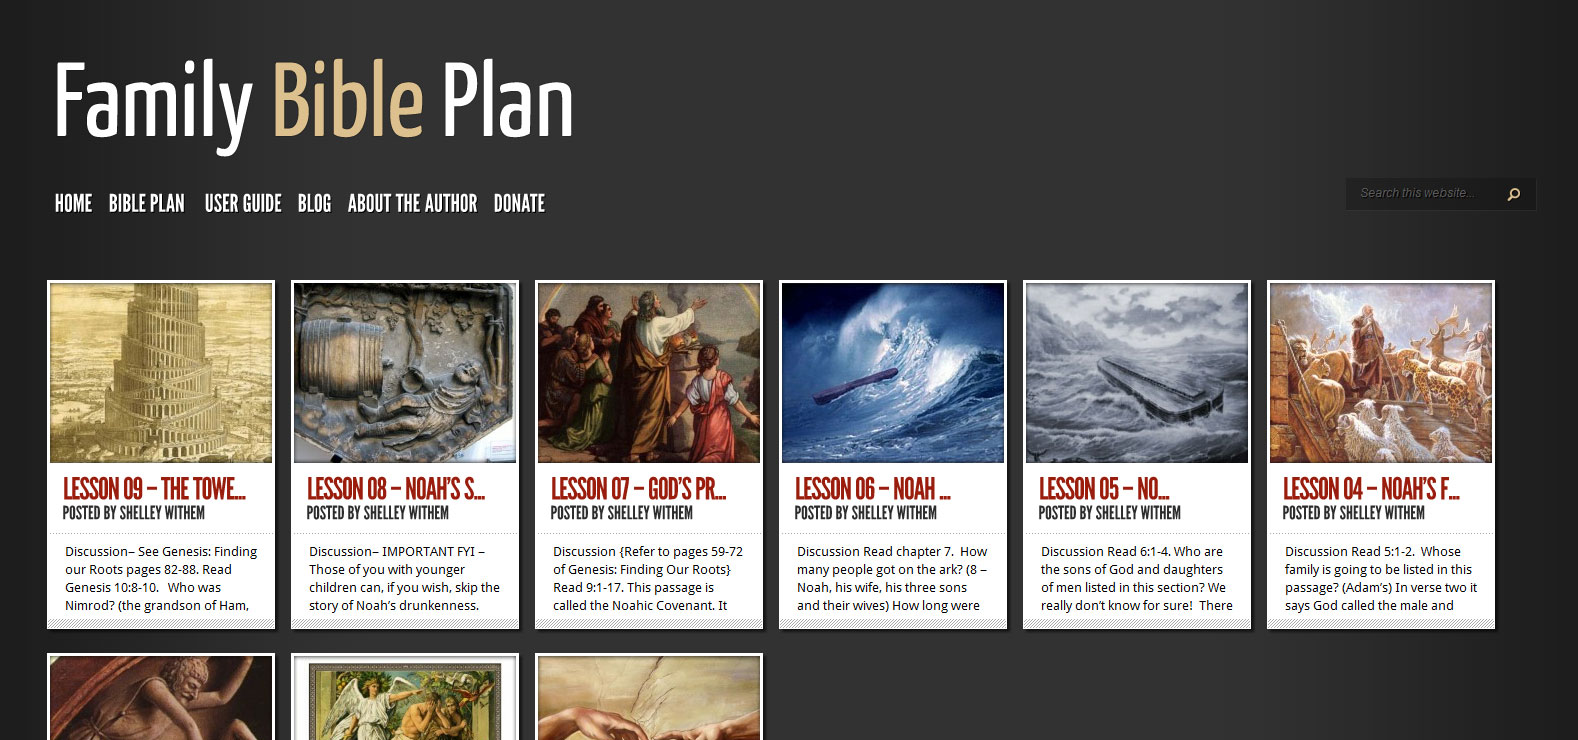 Side Project: The Family Bible Plan